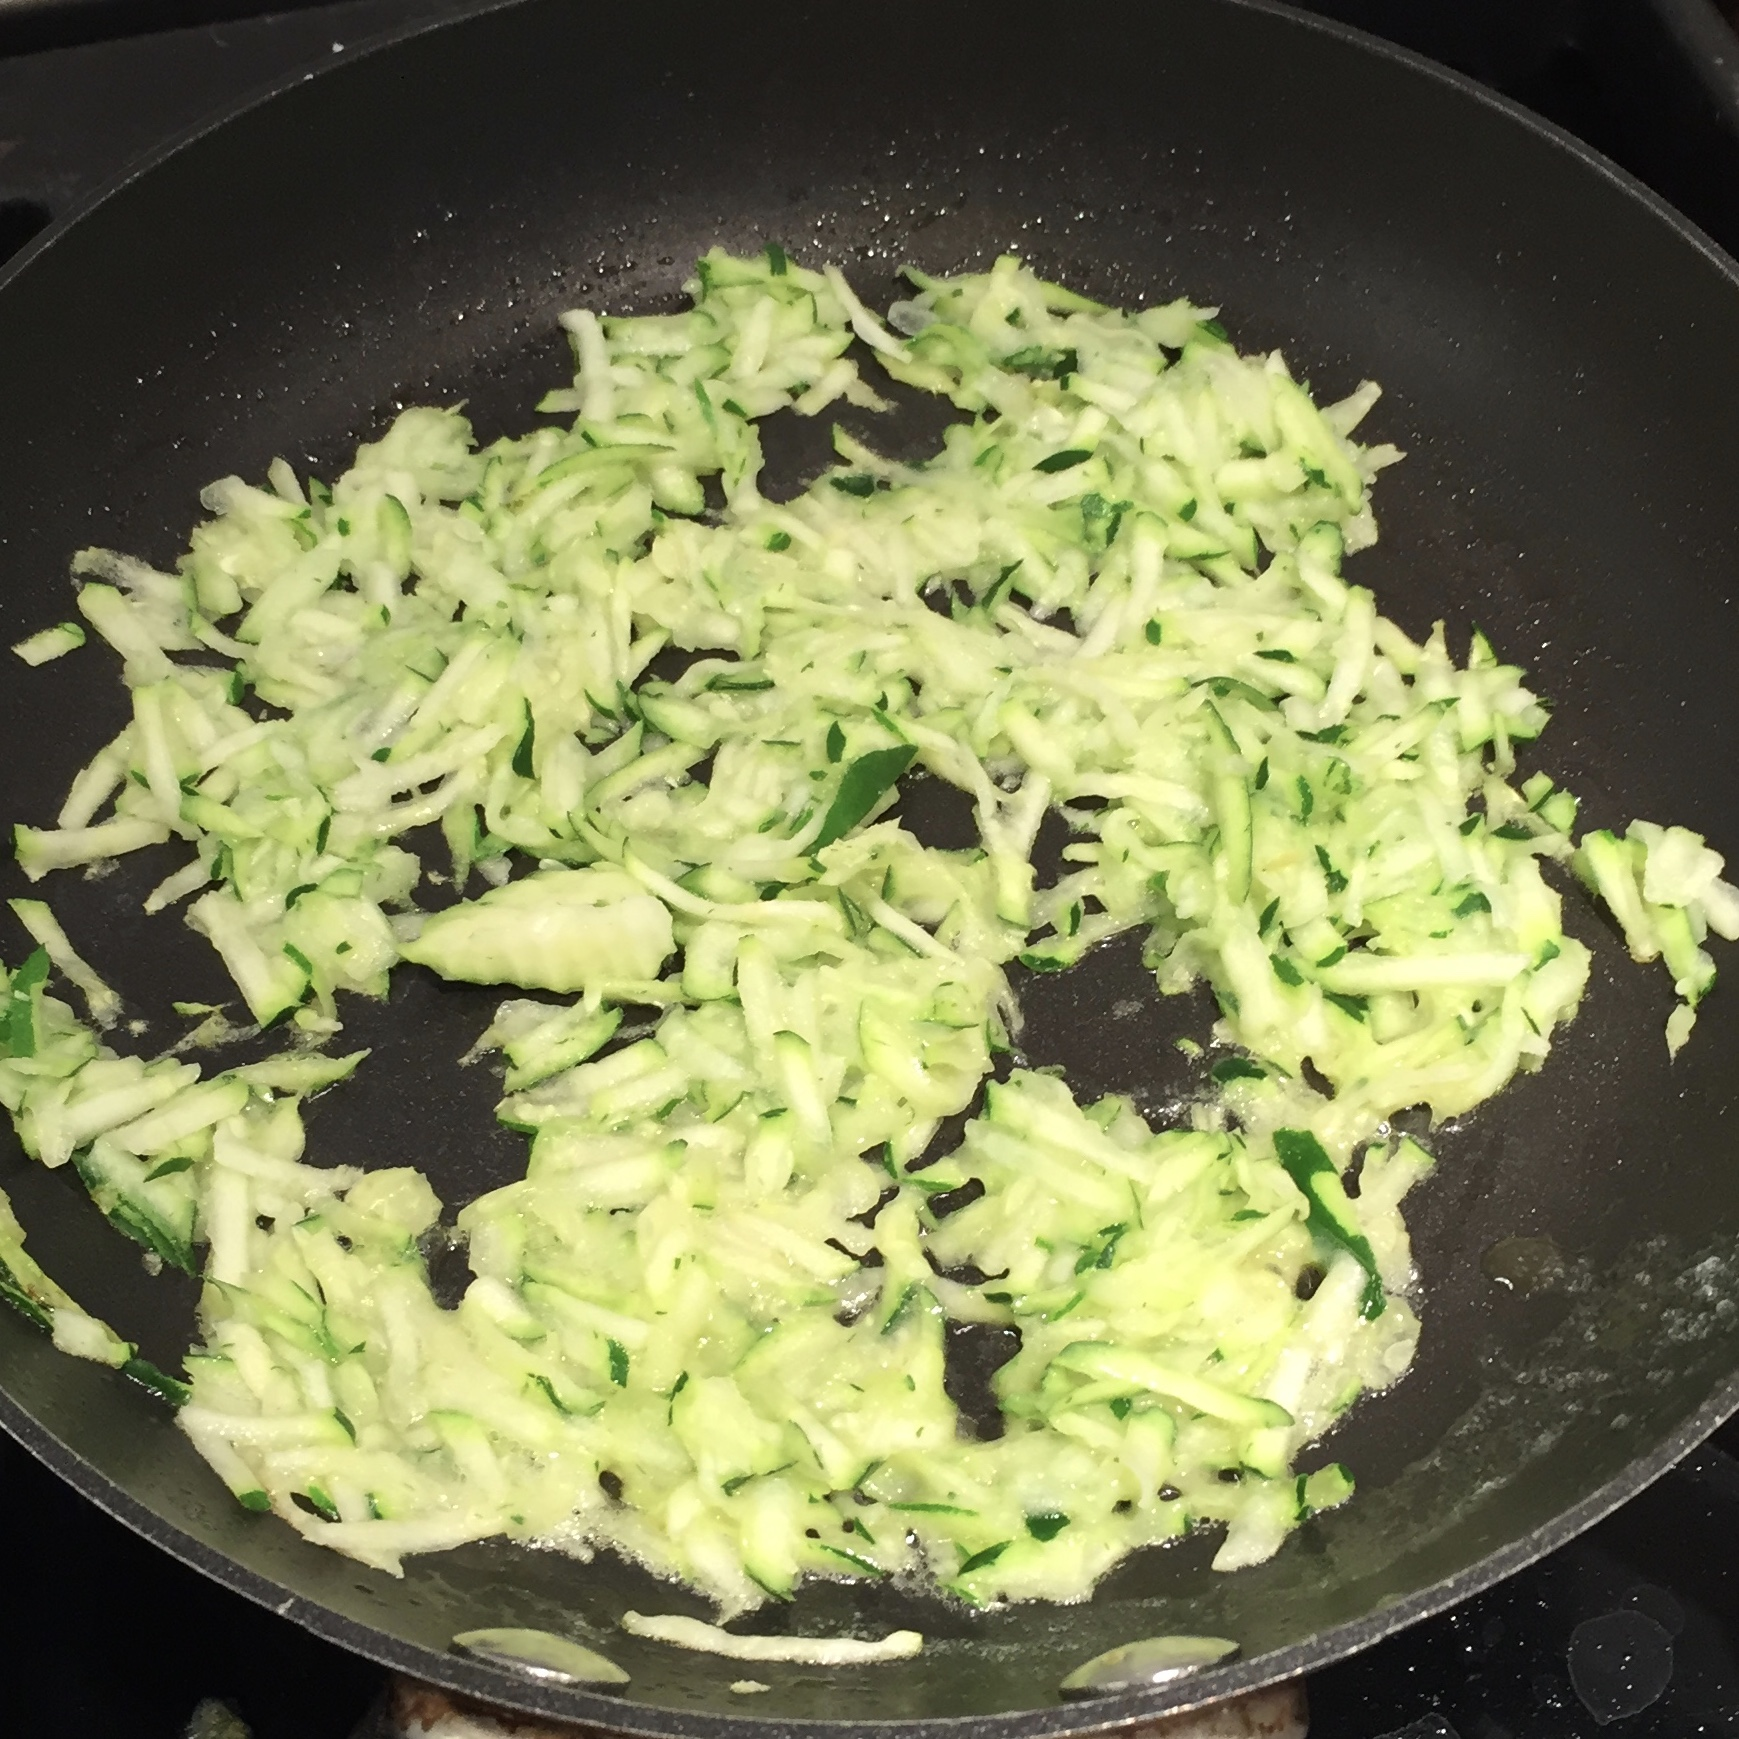 The entire process of washing, grating, and cooking the zucchini takes less time than it does to boil water for pasta!